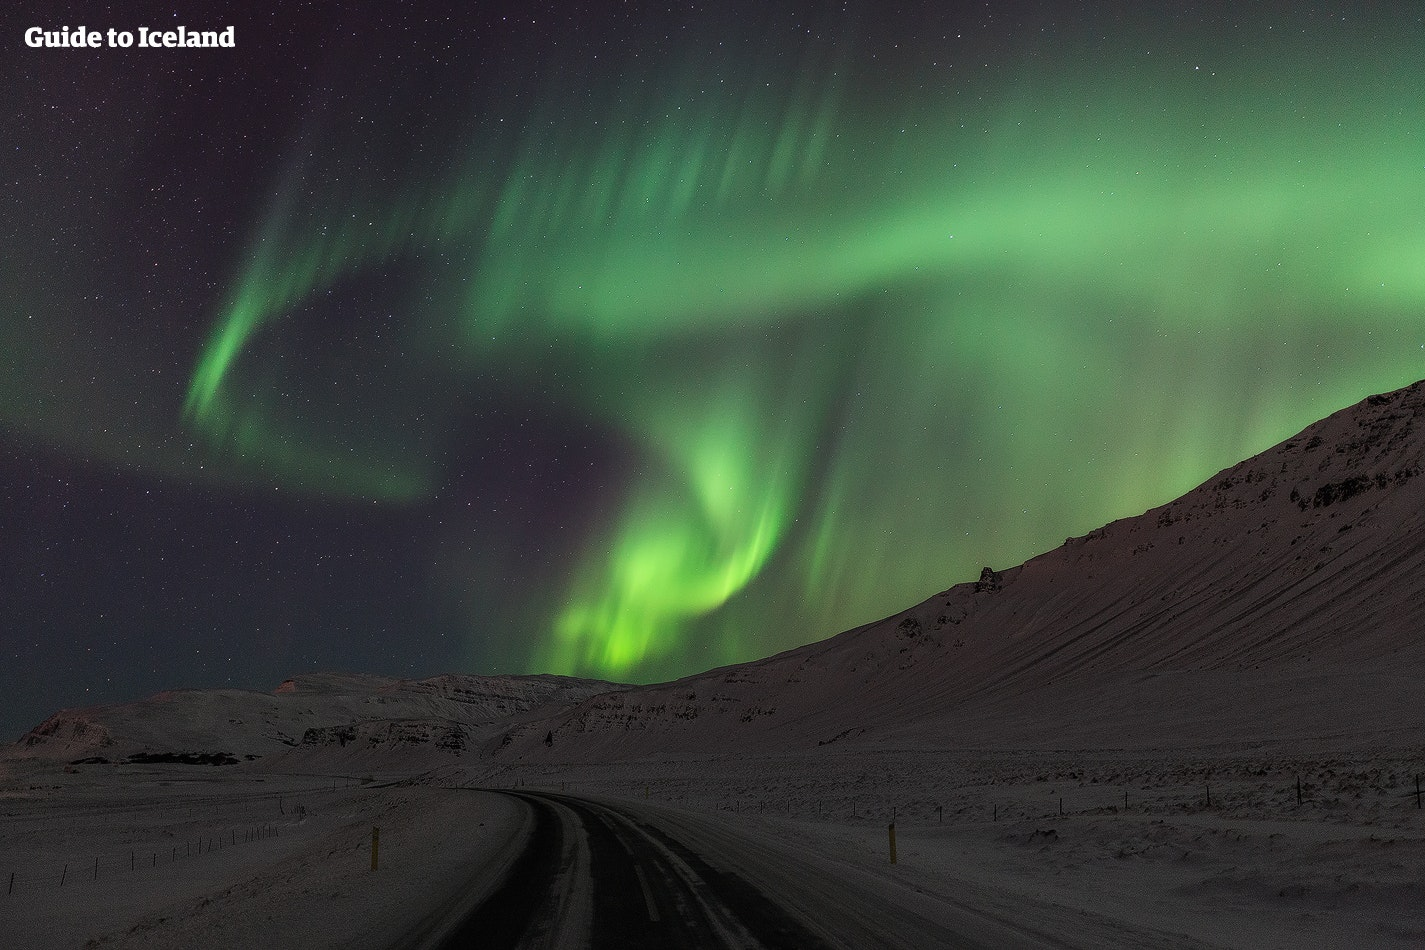 8 Day Northern Lights Winter Self Drive Tour of West and South Iceland with Ice Caving - day 8